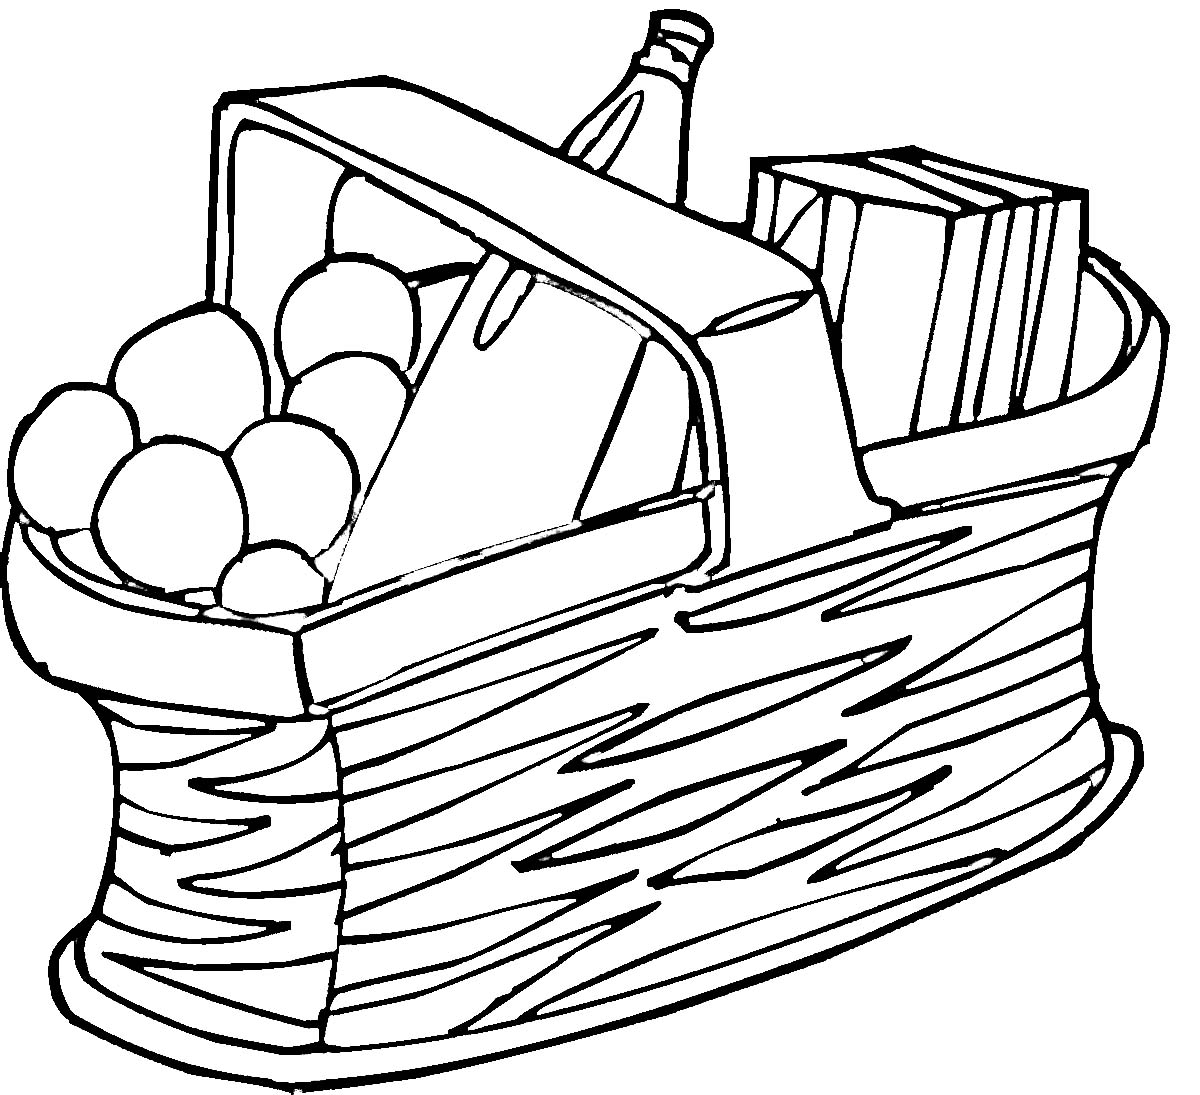 Picnic clipart black and white Free And picnic%20basket%20clip%20art%20black%20and%20white Black Art